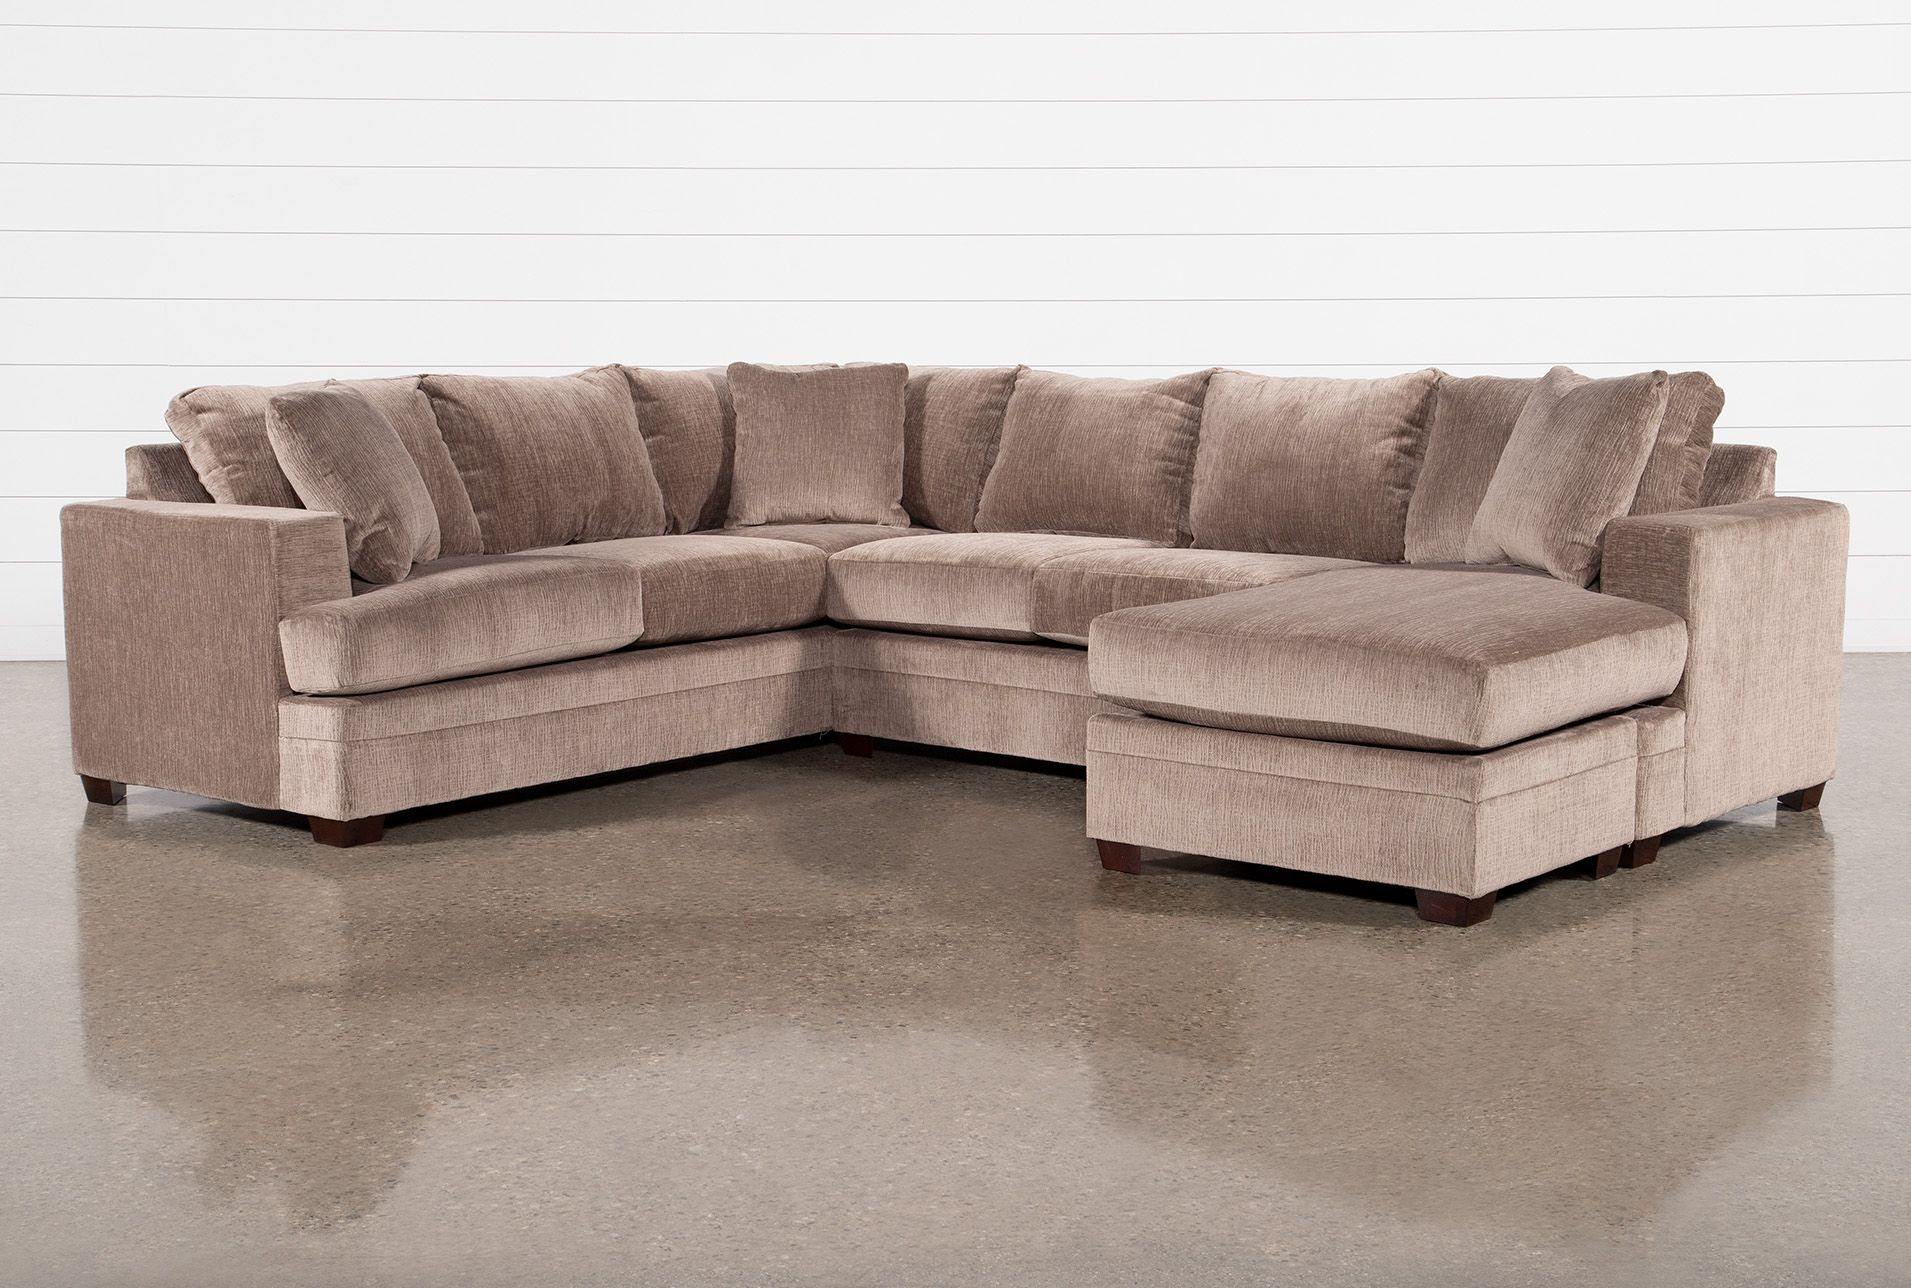 Kerri Stone 2 Piece Sectional Sofa With Right Arm Facing Sofa